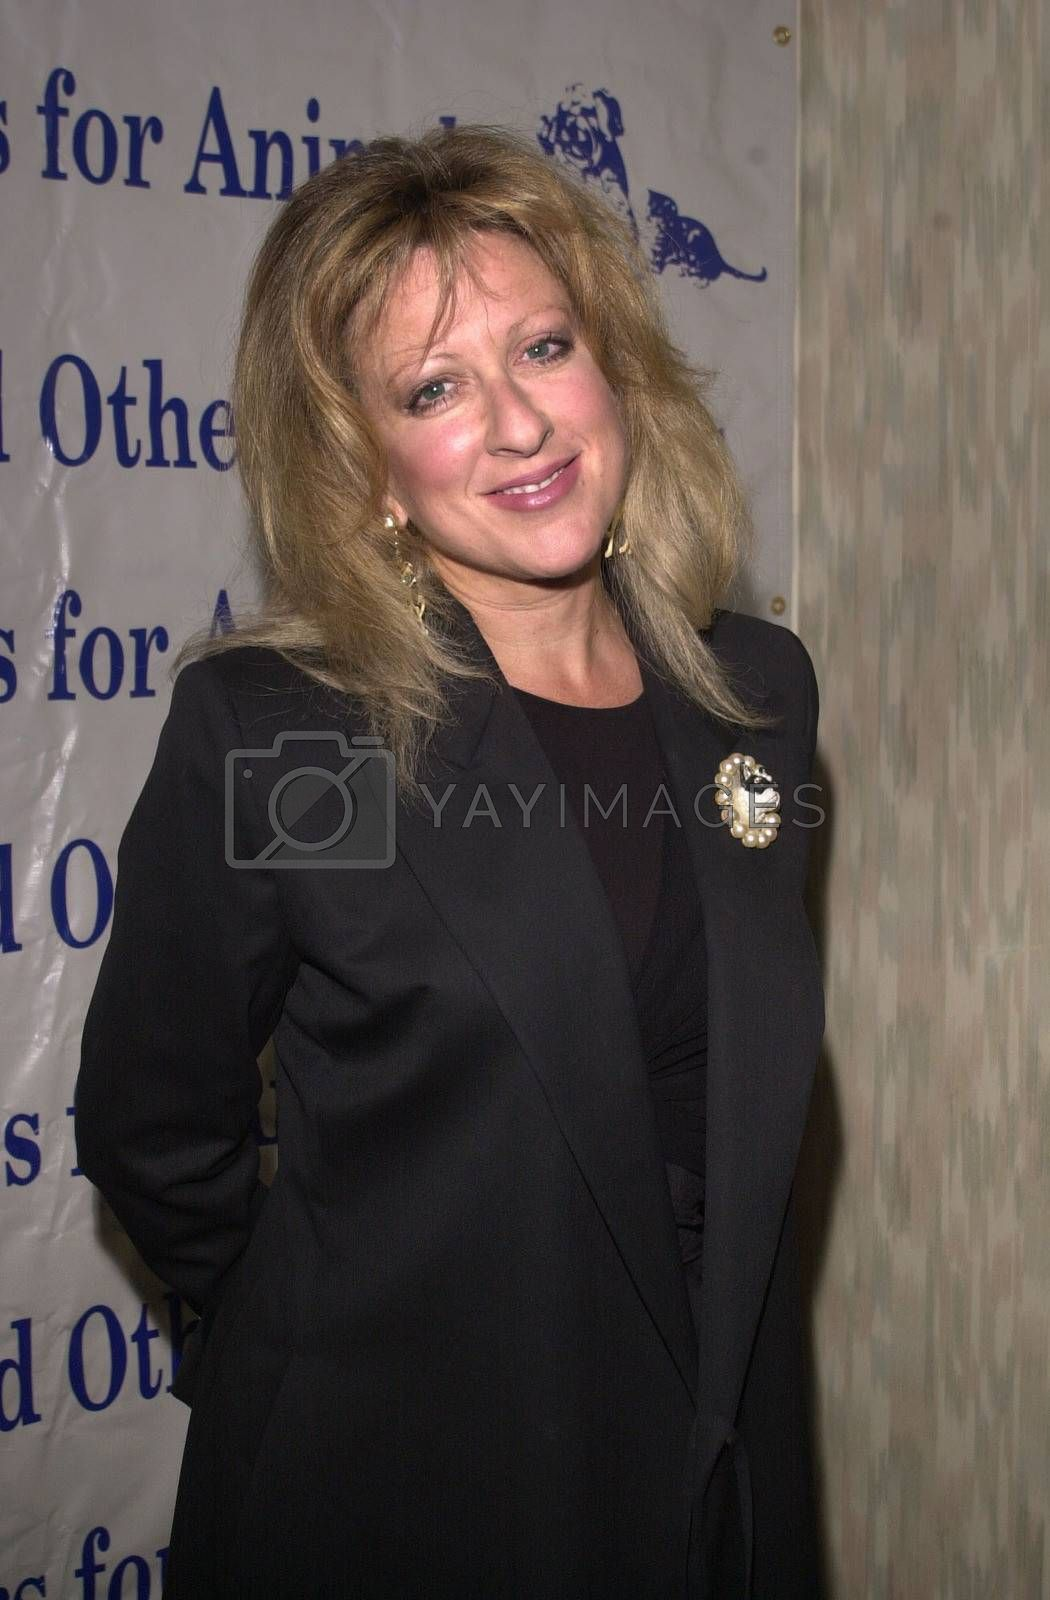 Elayne Boosler at the Actors and Others for Animals benefit, Universal City, 10-21-00